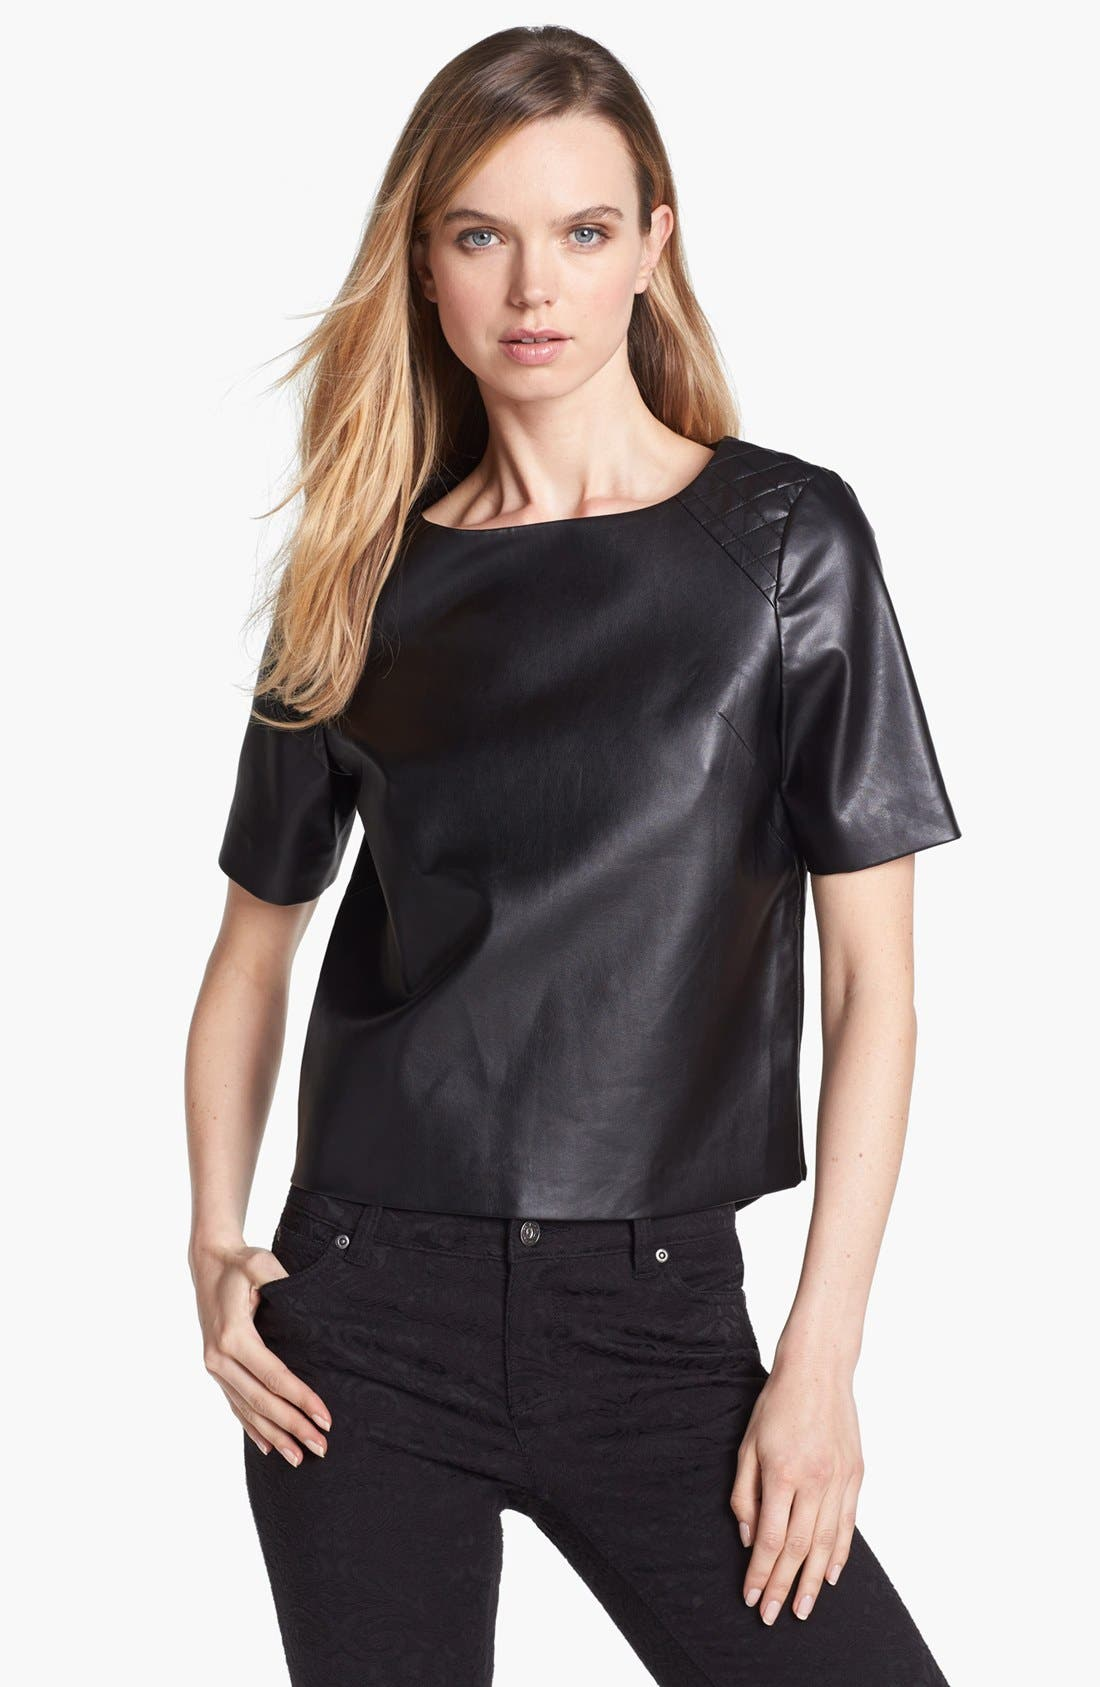 Alternate Image 1 Selected - Vince Camuto Quilted Shoulder Faux Leather Top